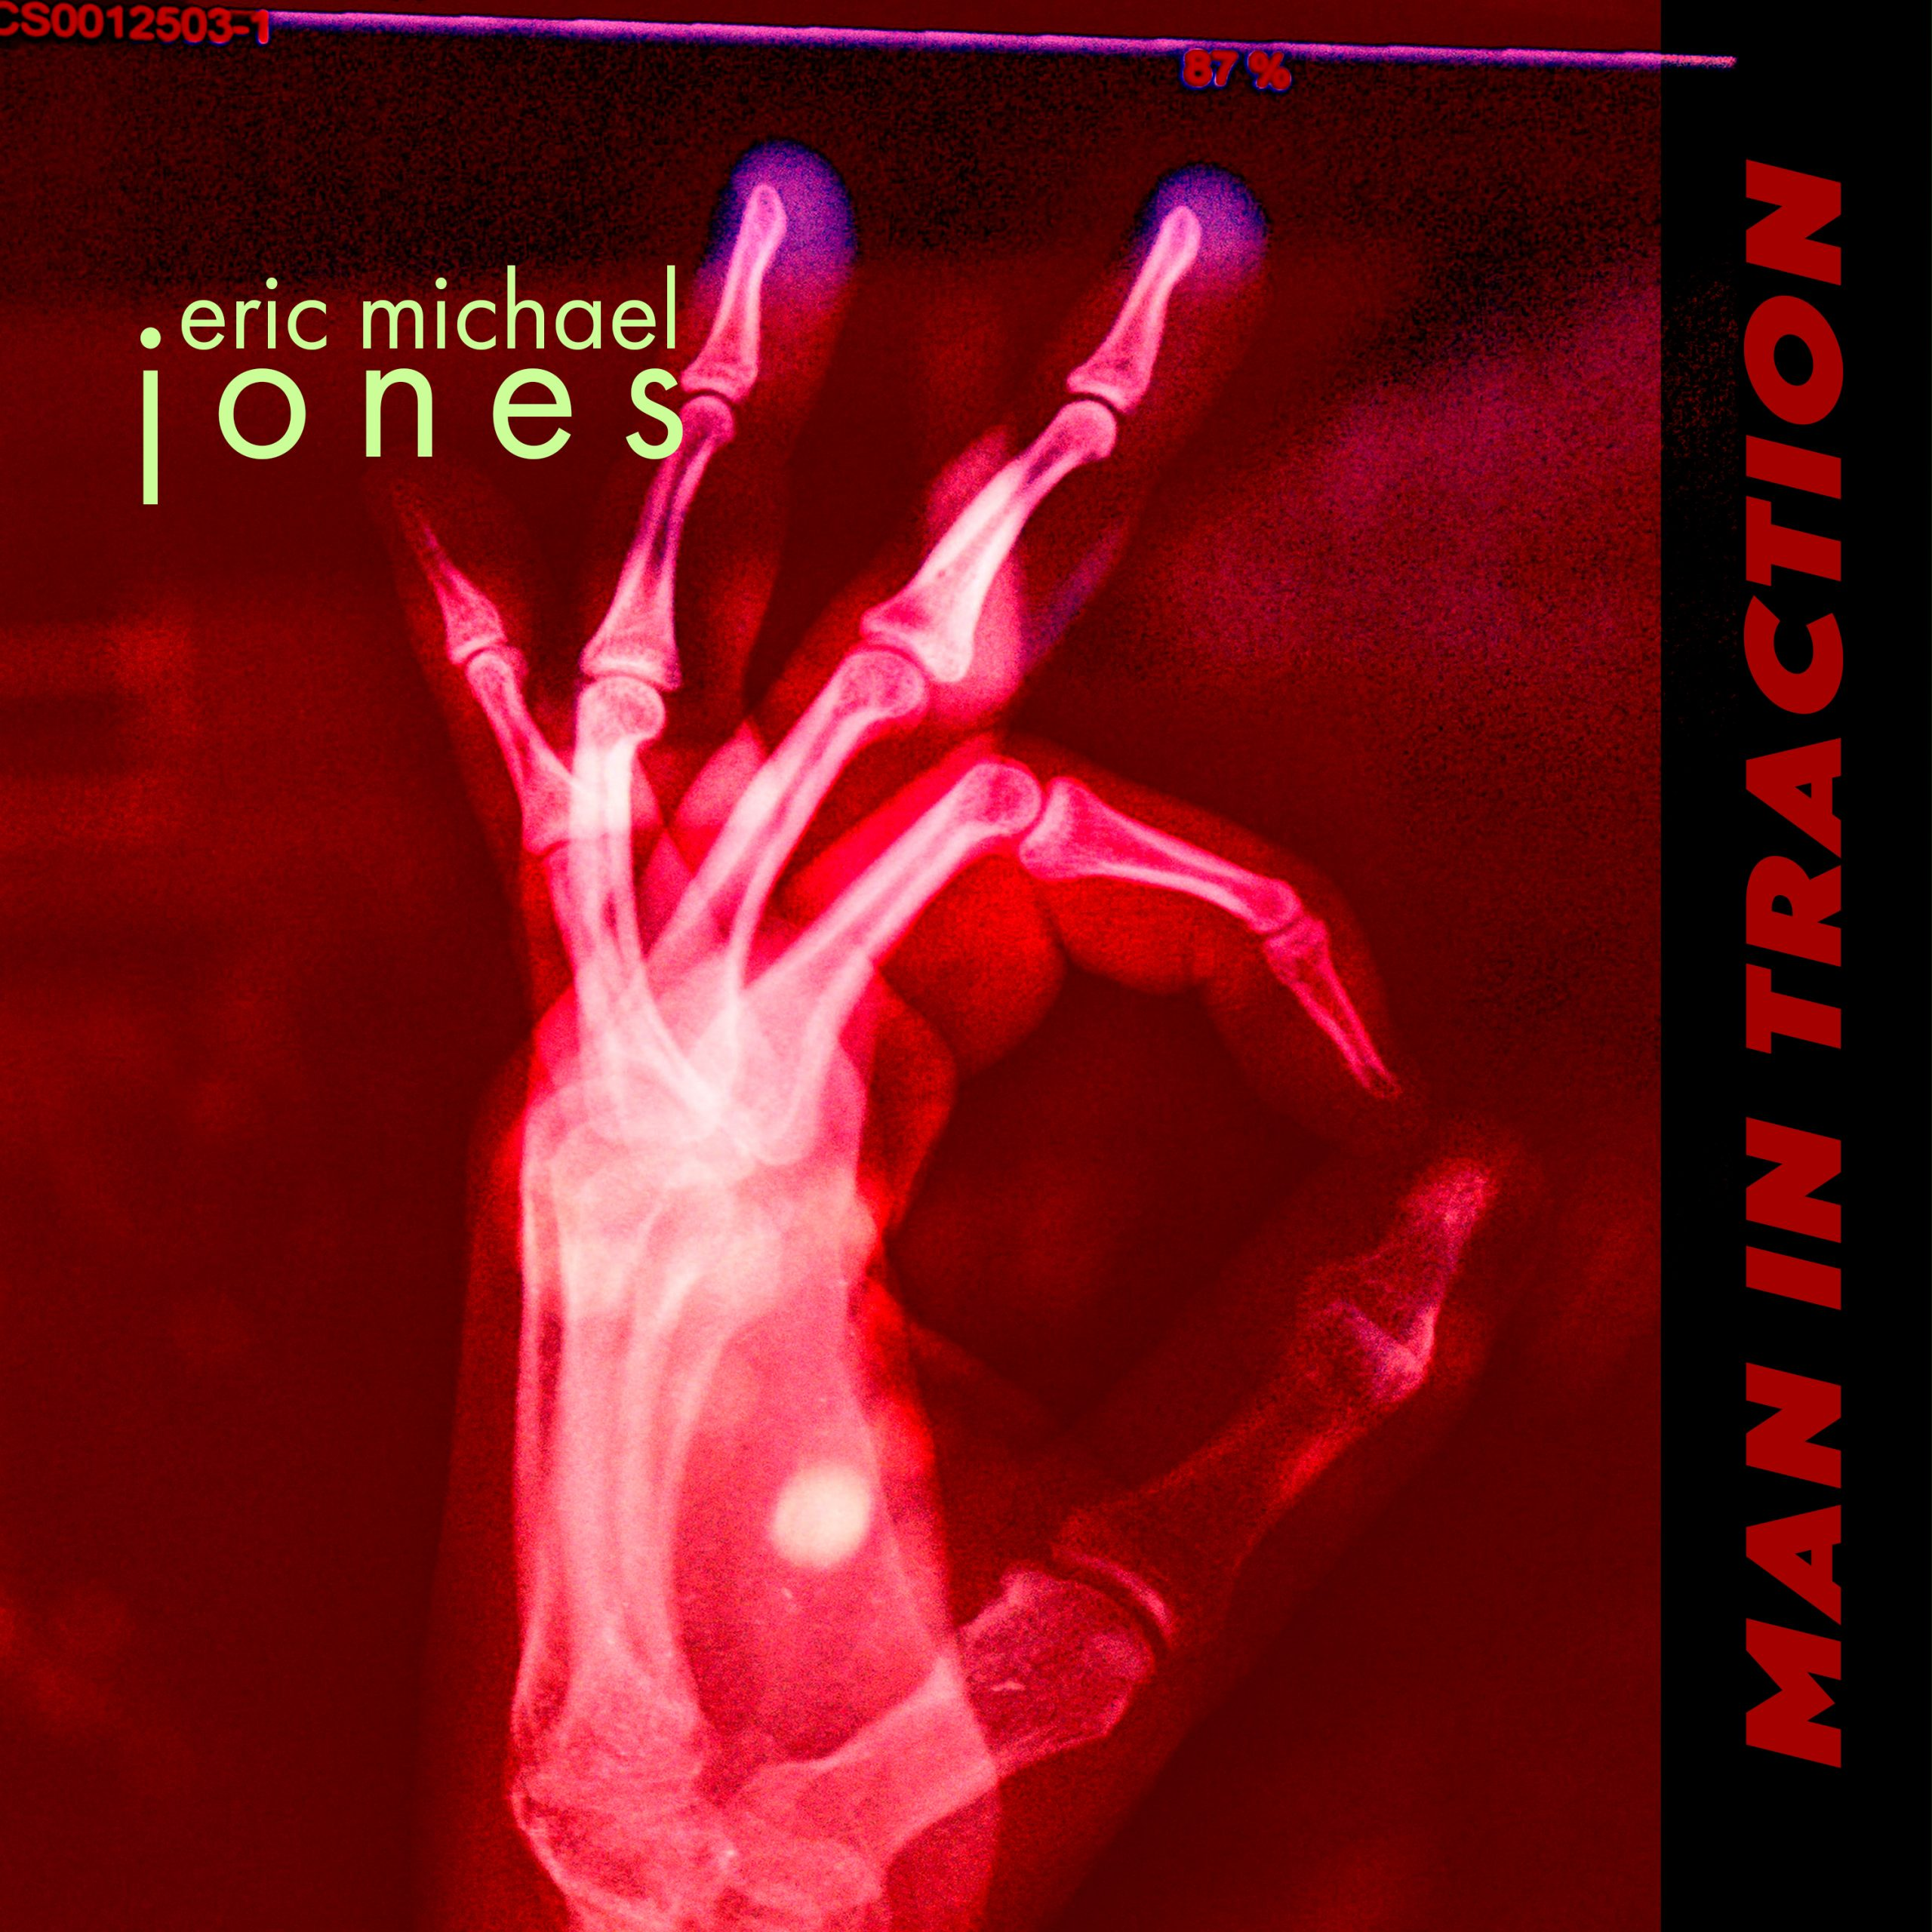 Cover art for Man In Traction, shows an x-ray of a hand giving the OK sign